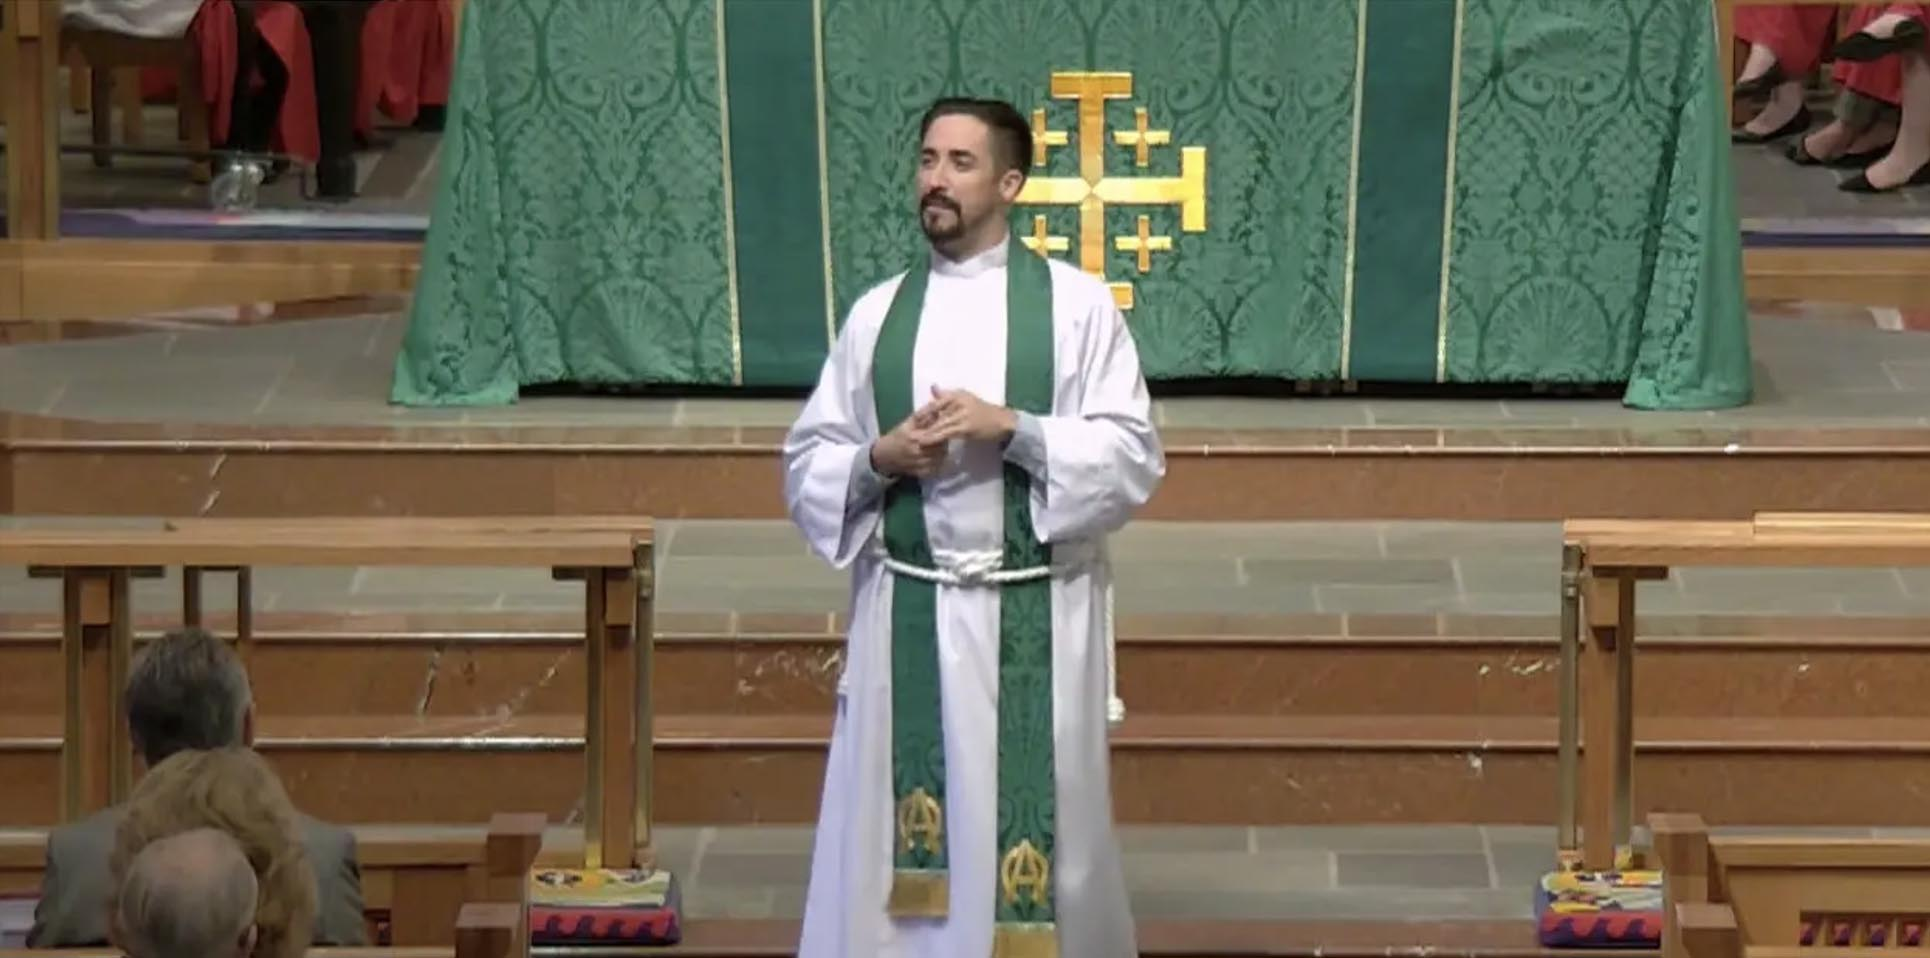 What Are You Afraid Of? - Sermon by the Rev. Sean Steele